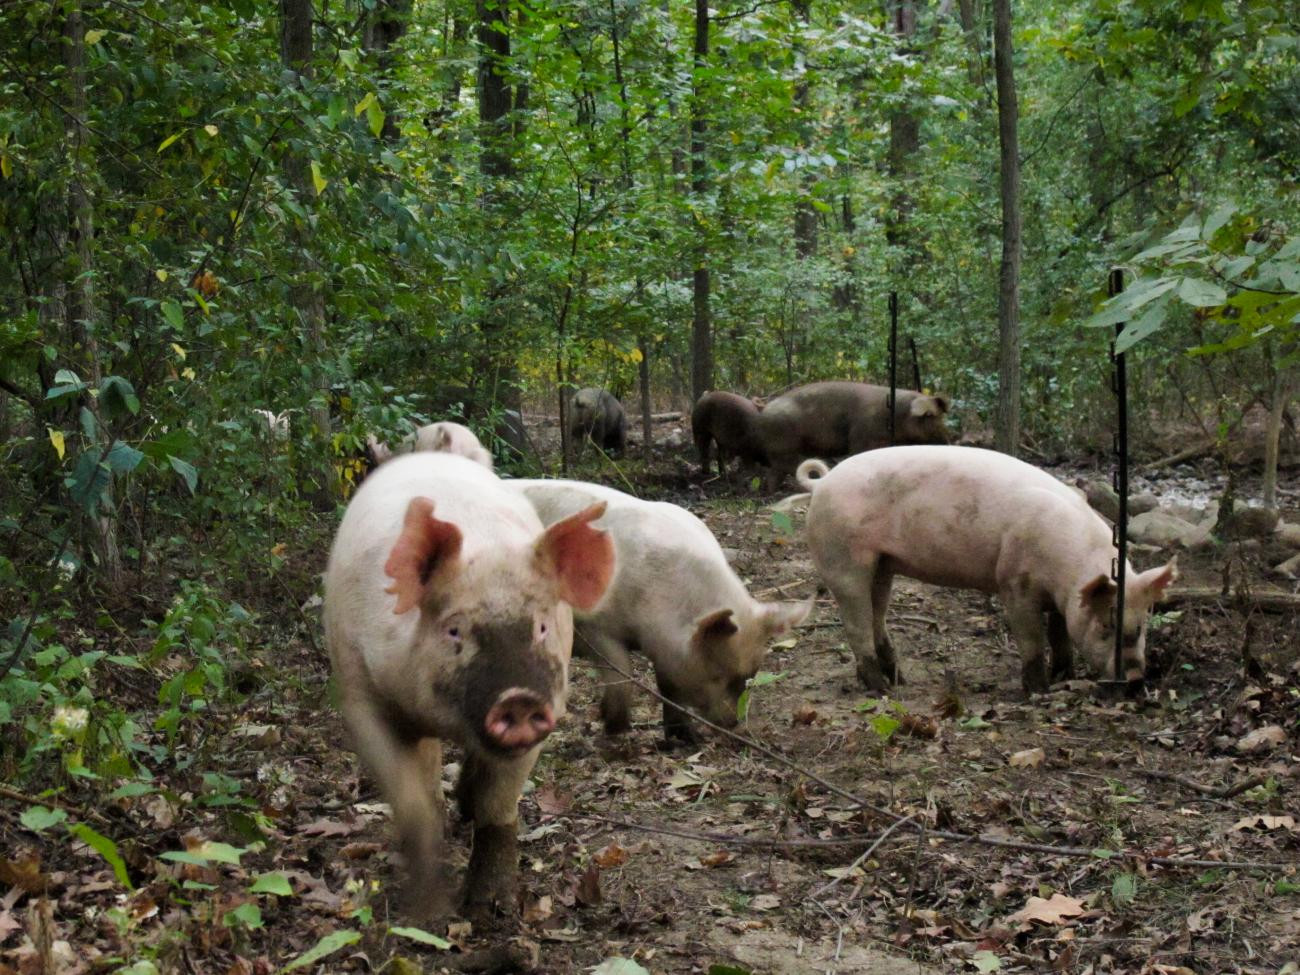 The ground on a woodland pig's nose is his happiness meter. This pig probably thinks he's in heaven! :)